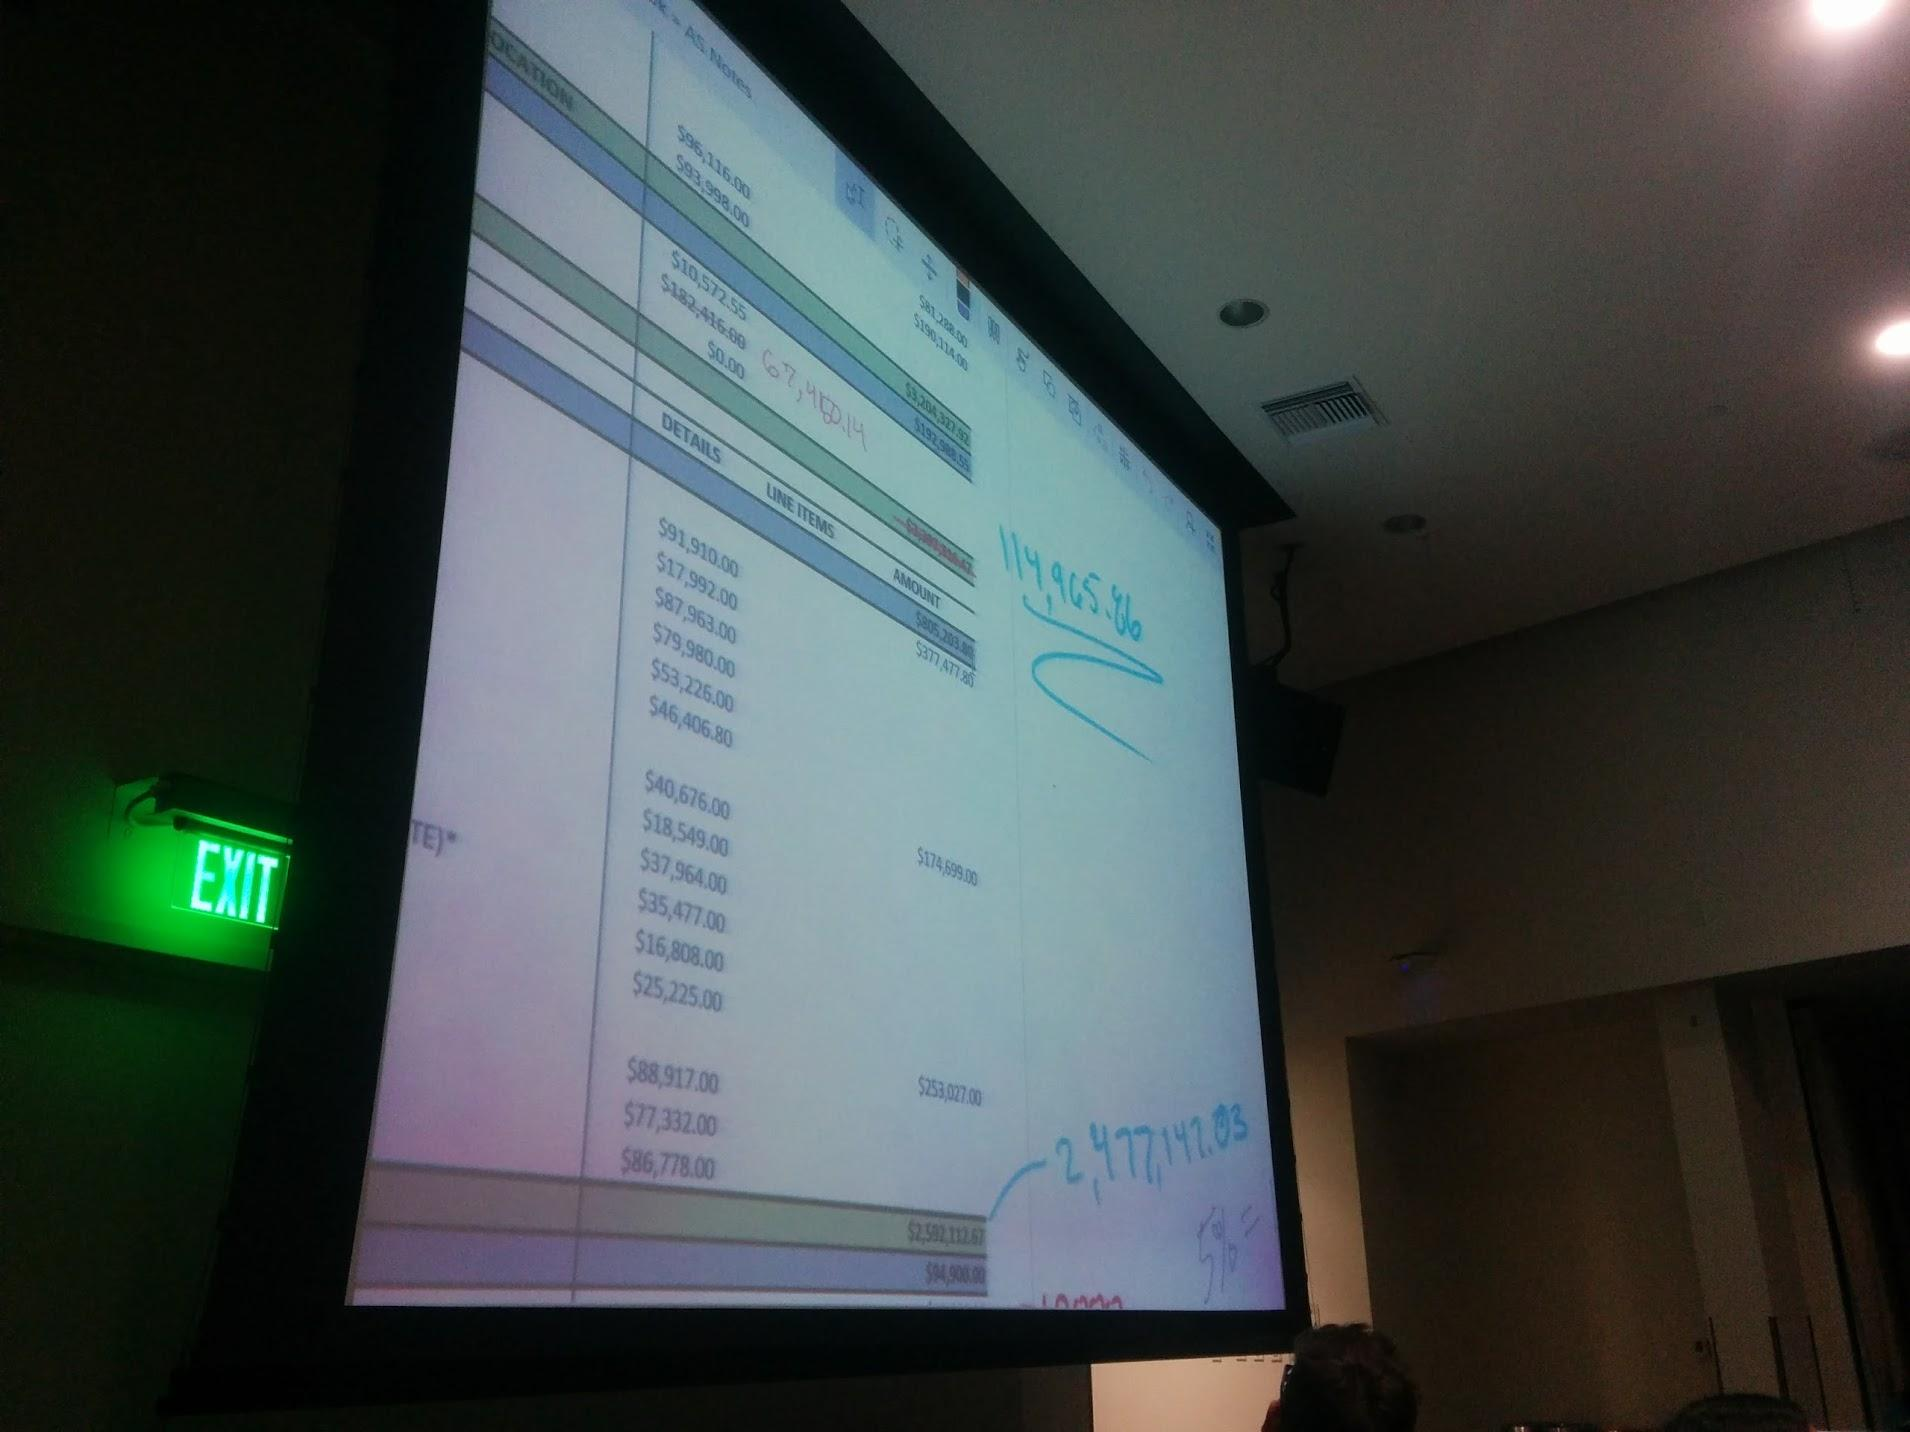 ASUCSD Financial Controller Andrew Thai makes edits to the Executive Budget budget on the projector during the Senate meeting. Mo Al Elew / The Triton.